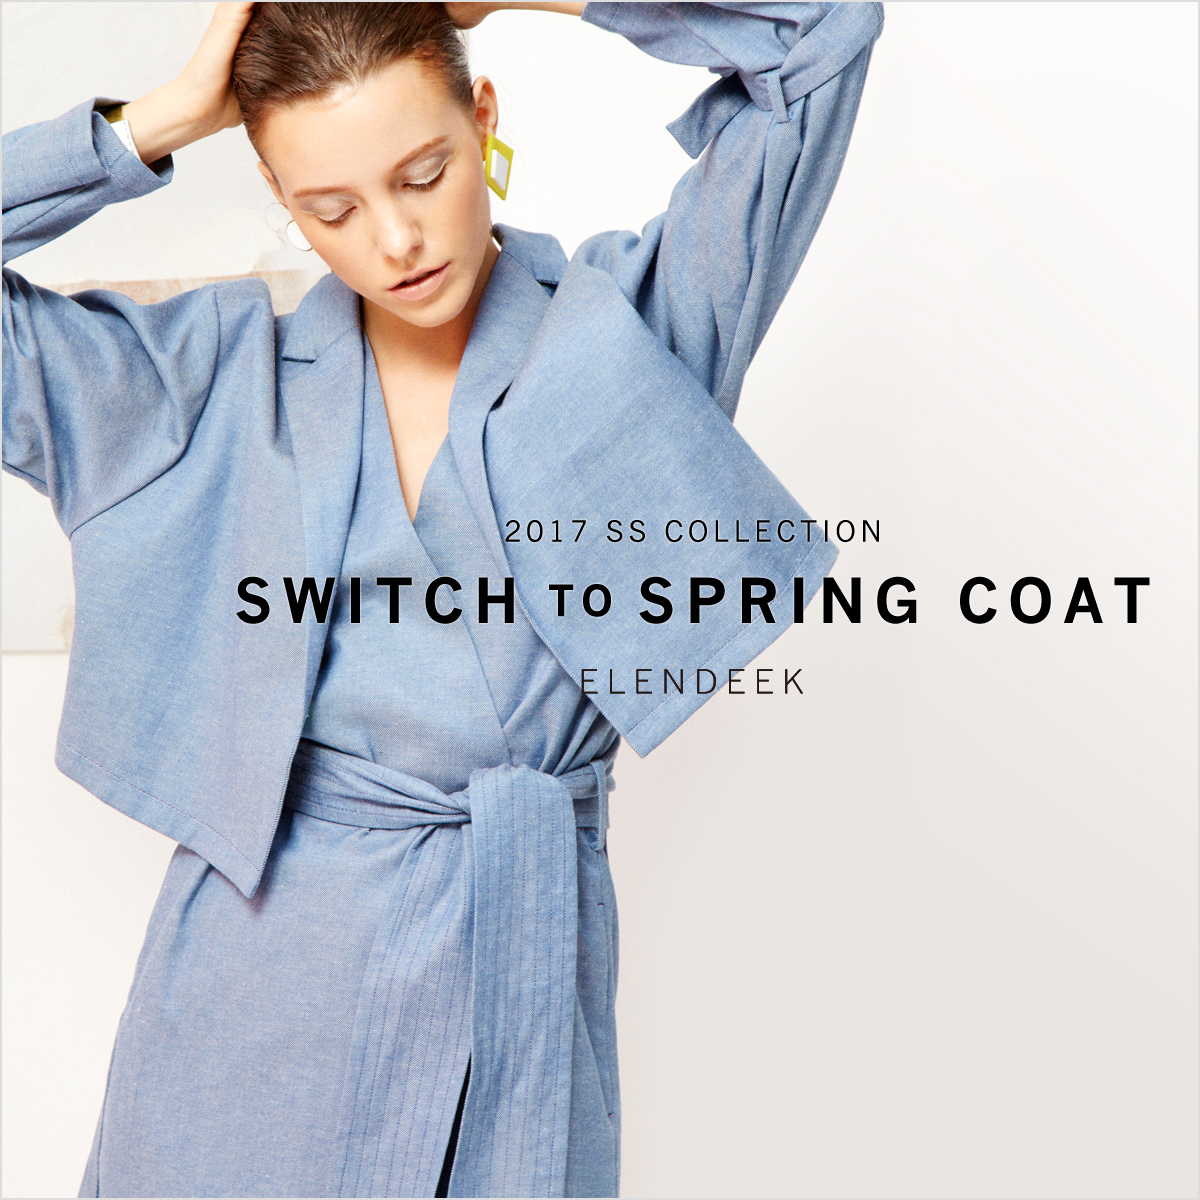 SWITCH TO SPRING COAT